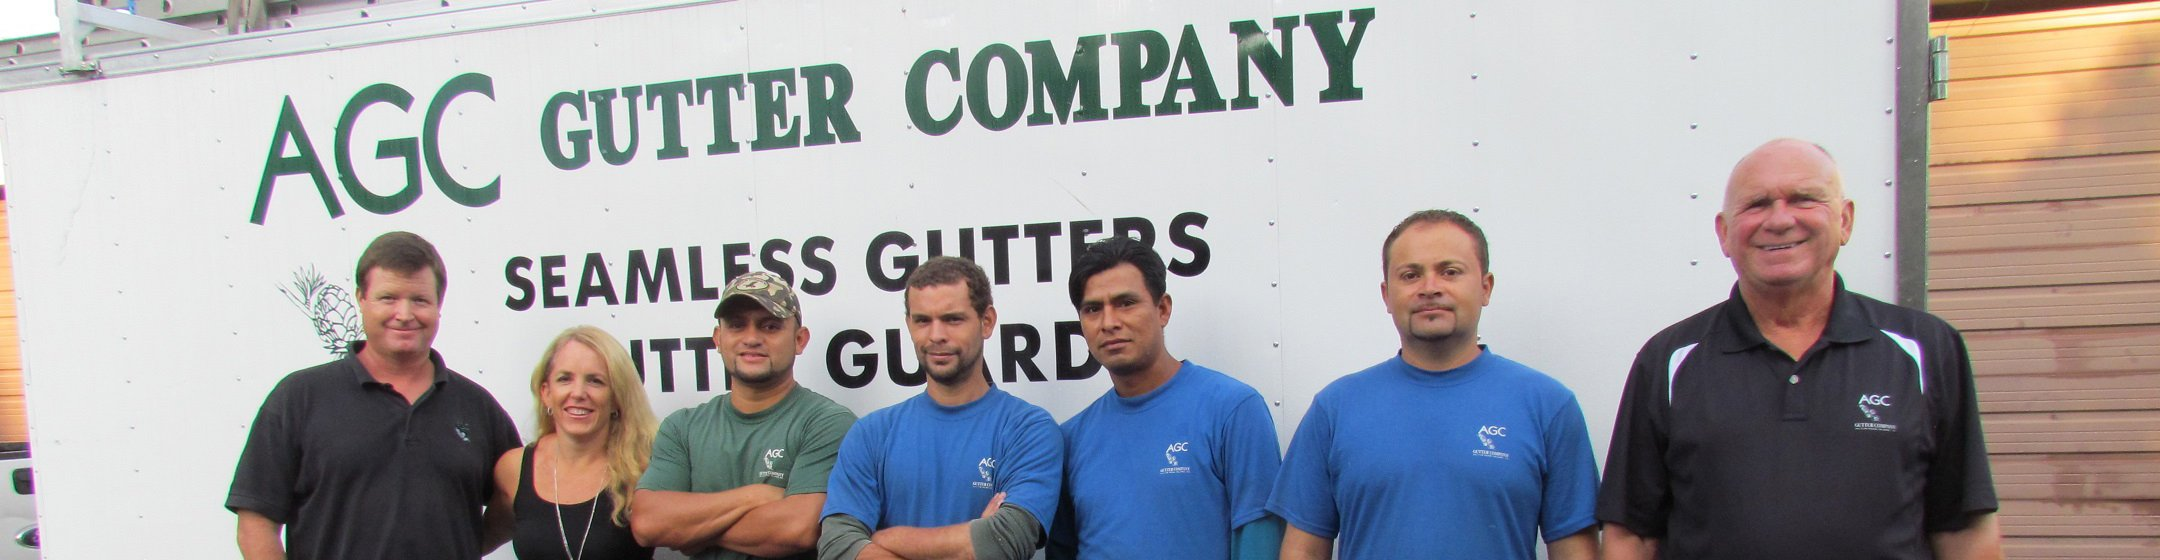 Hilton Head And Bluffton Source For Seamless Gutters And